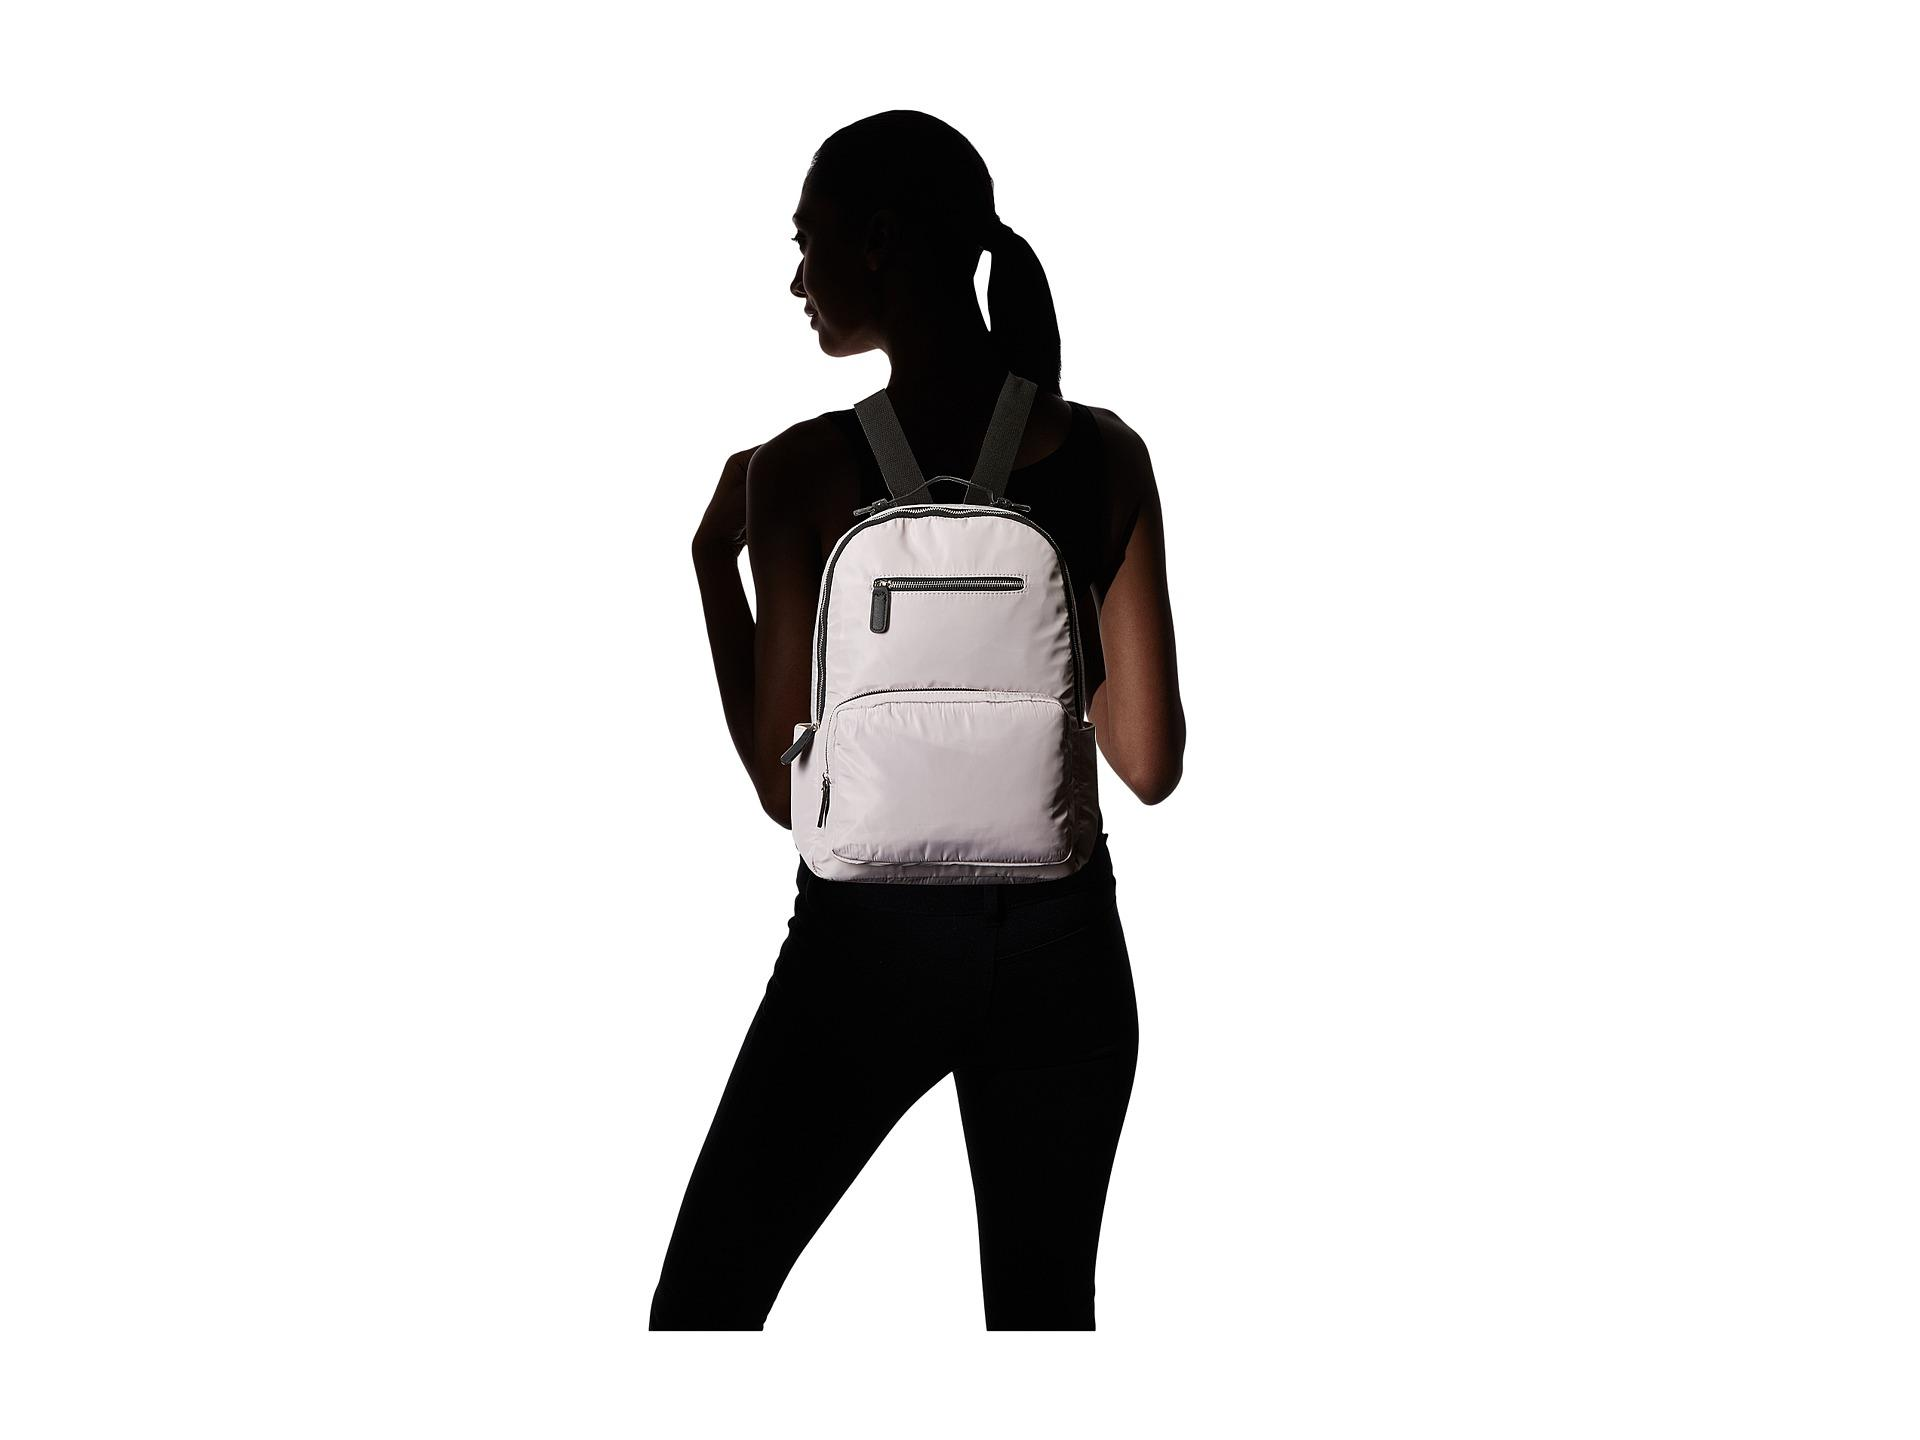 Lyst - Steve Madden Mgscribe Backpack By Madden Girl in Gray 9d5f19ec64f8e